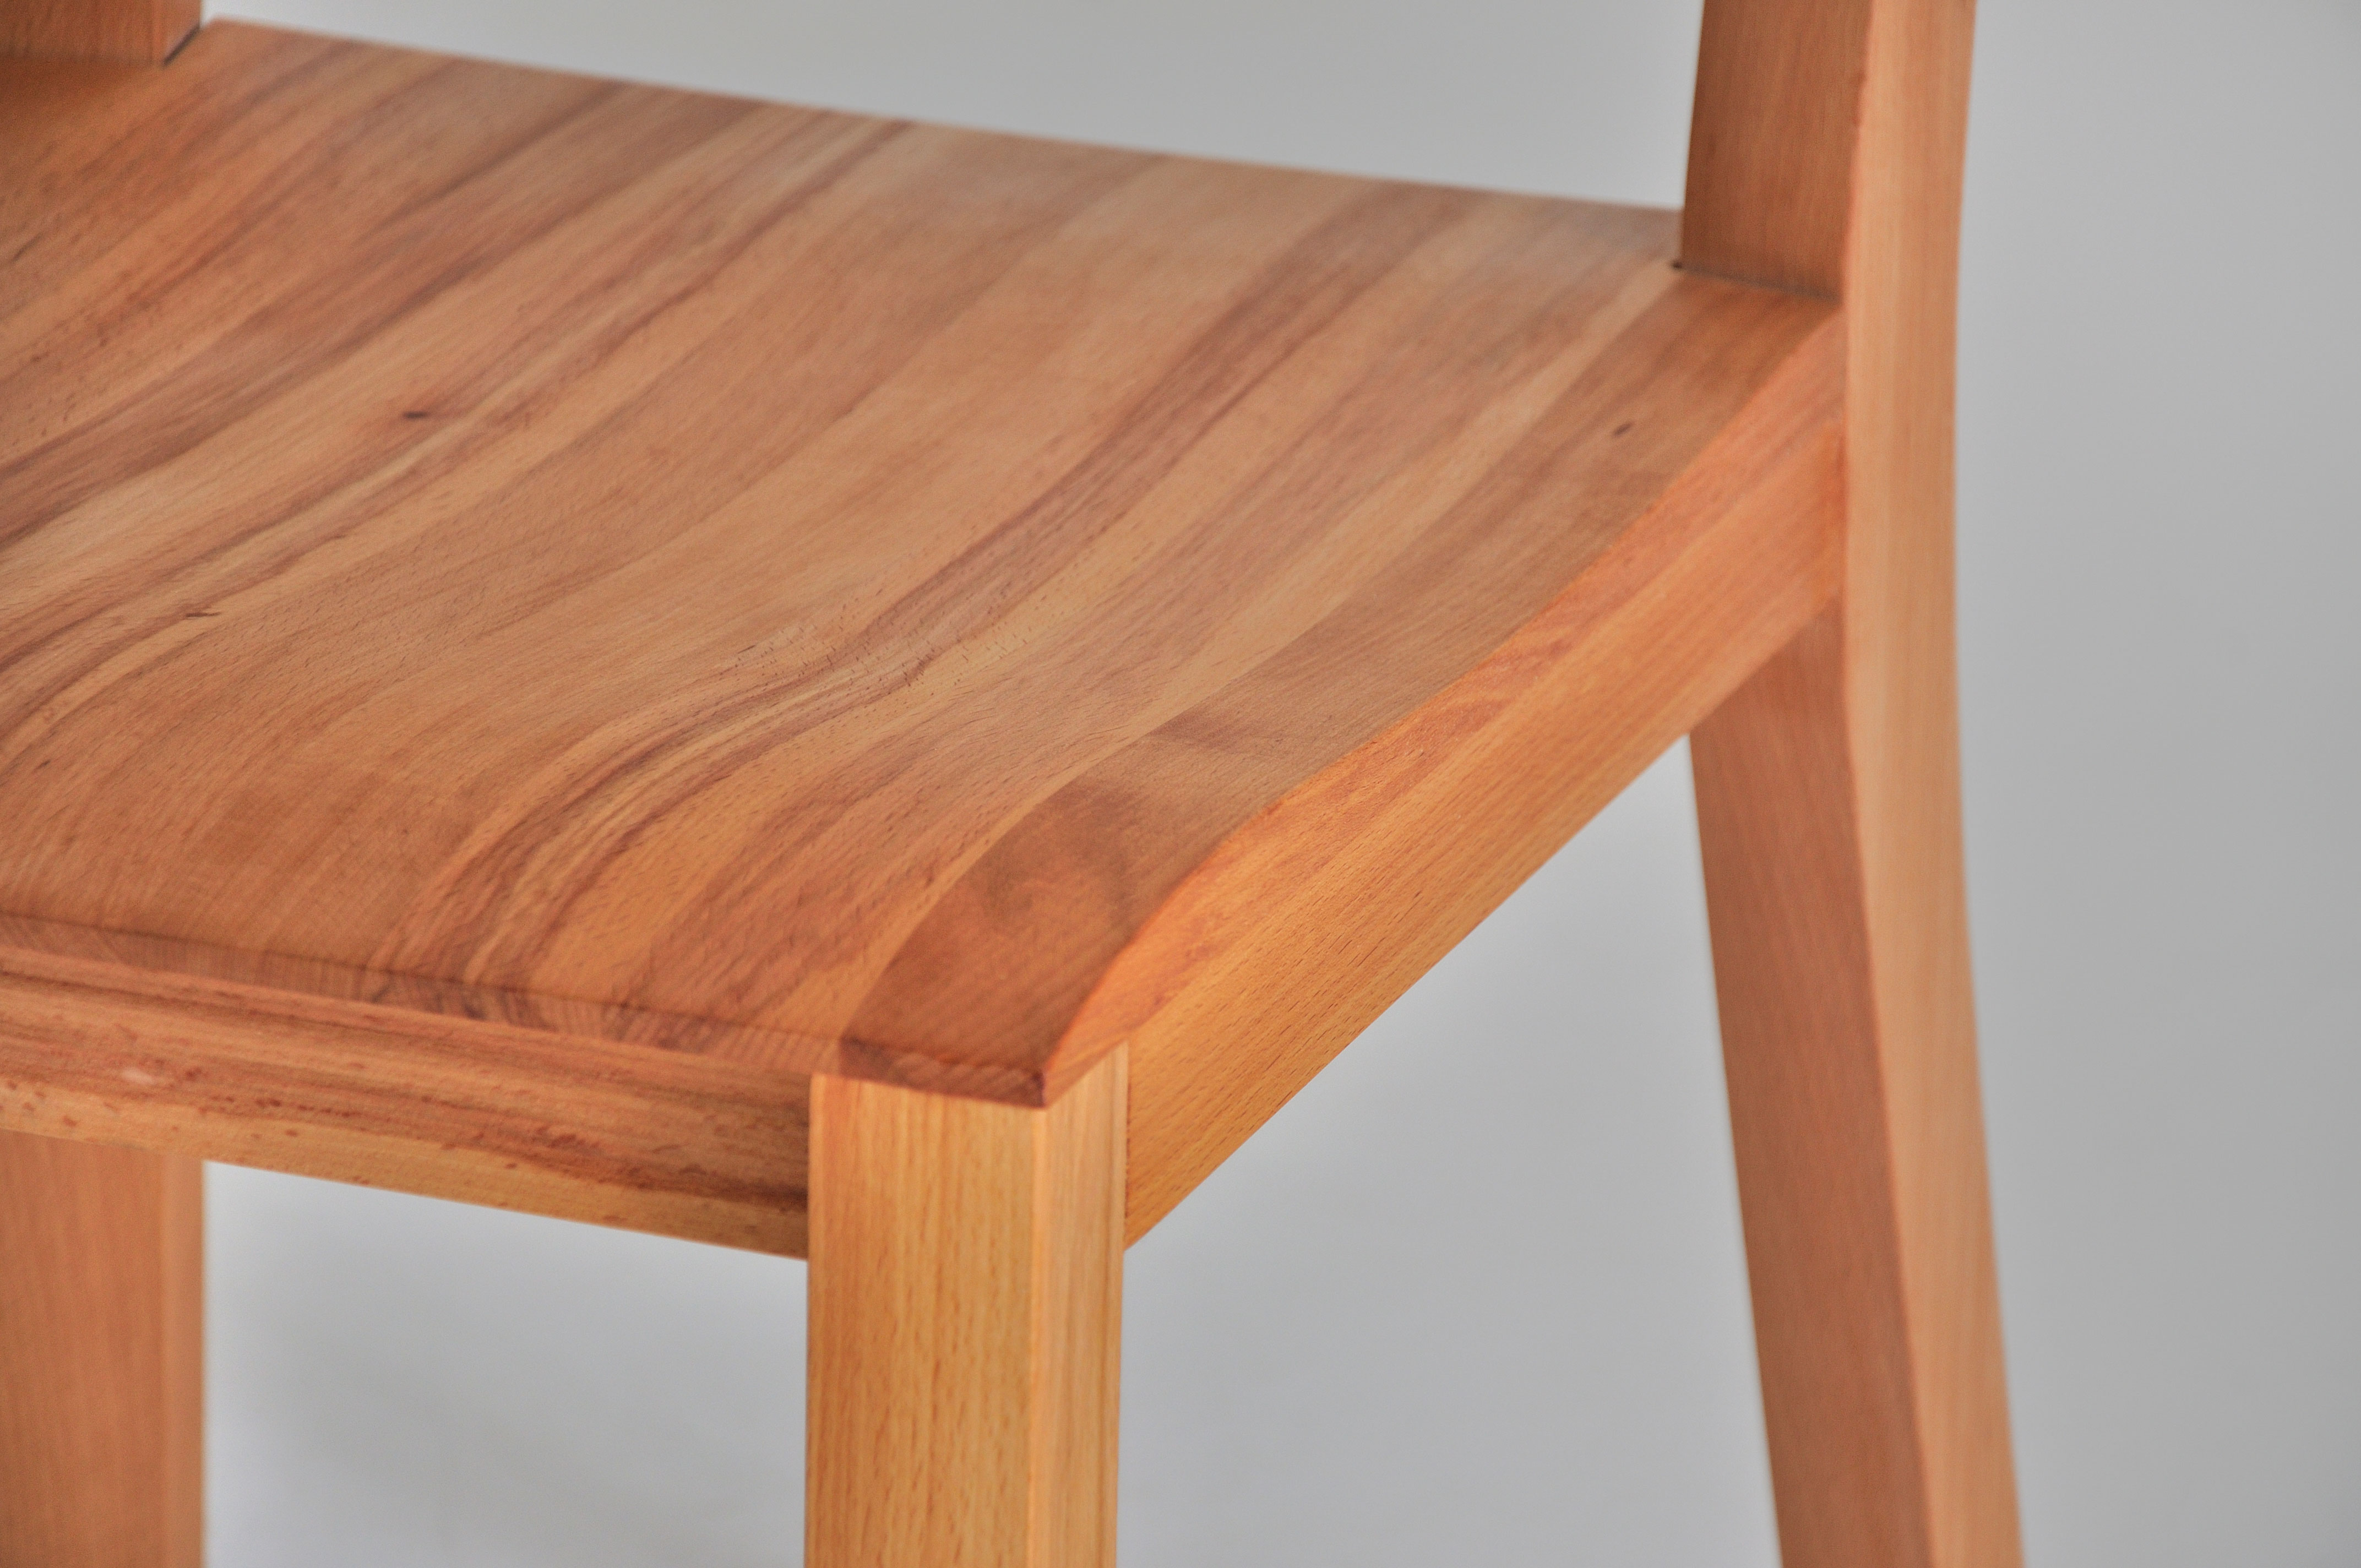 Dining Room Wooden Chair NOMI DSC6443 custom made in solid wood by vitamin design